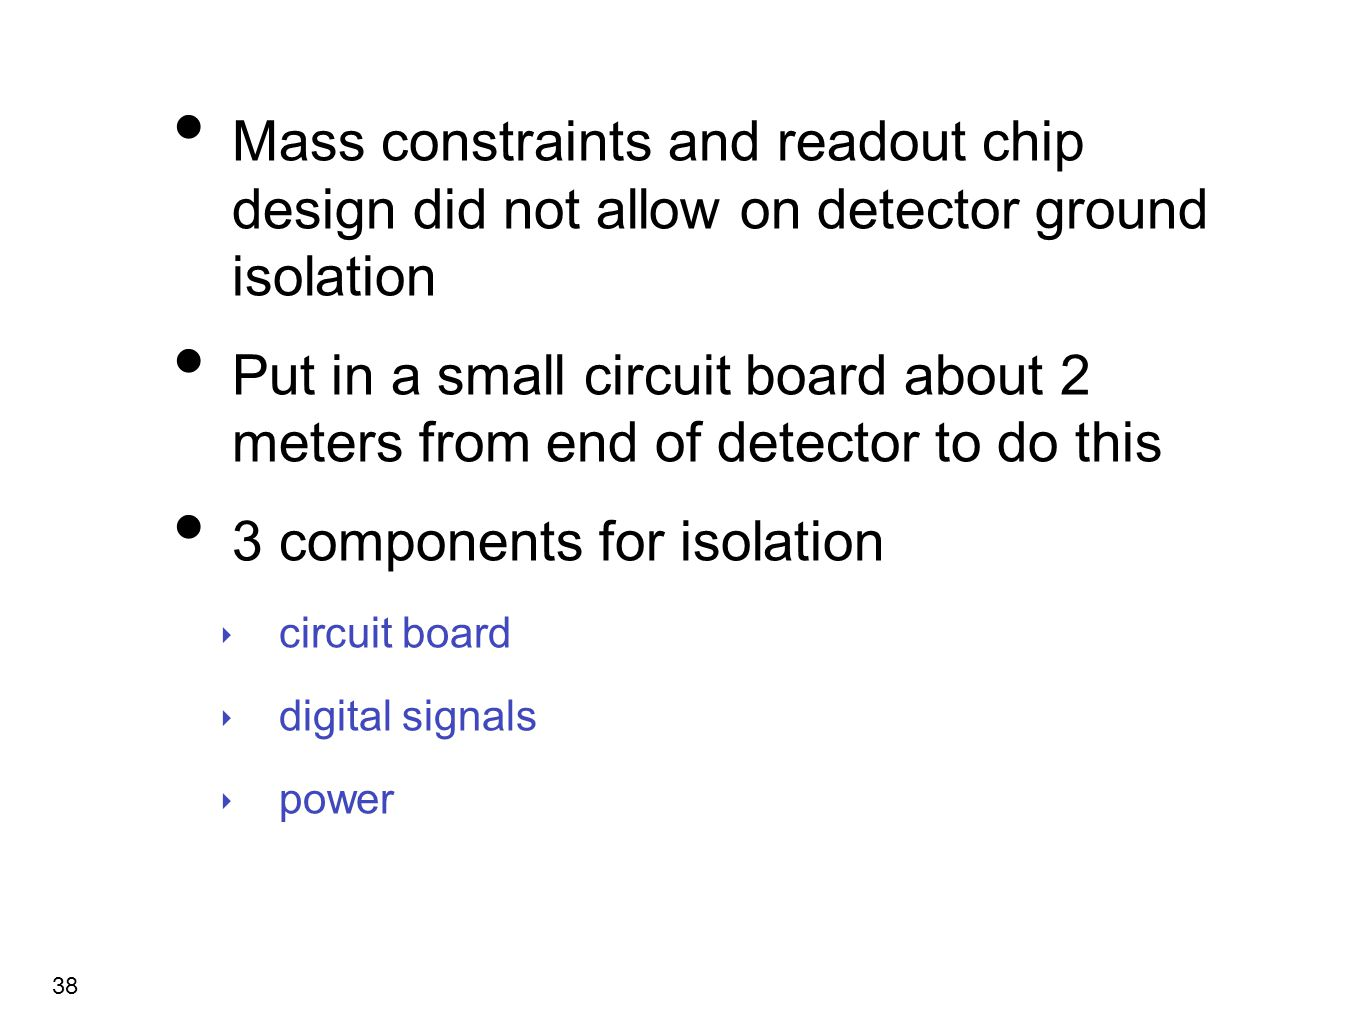 Low Noise Detector Design Ppt Video Online Download Power Circuit 3 Components For Isolation